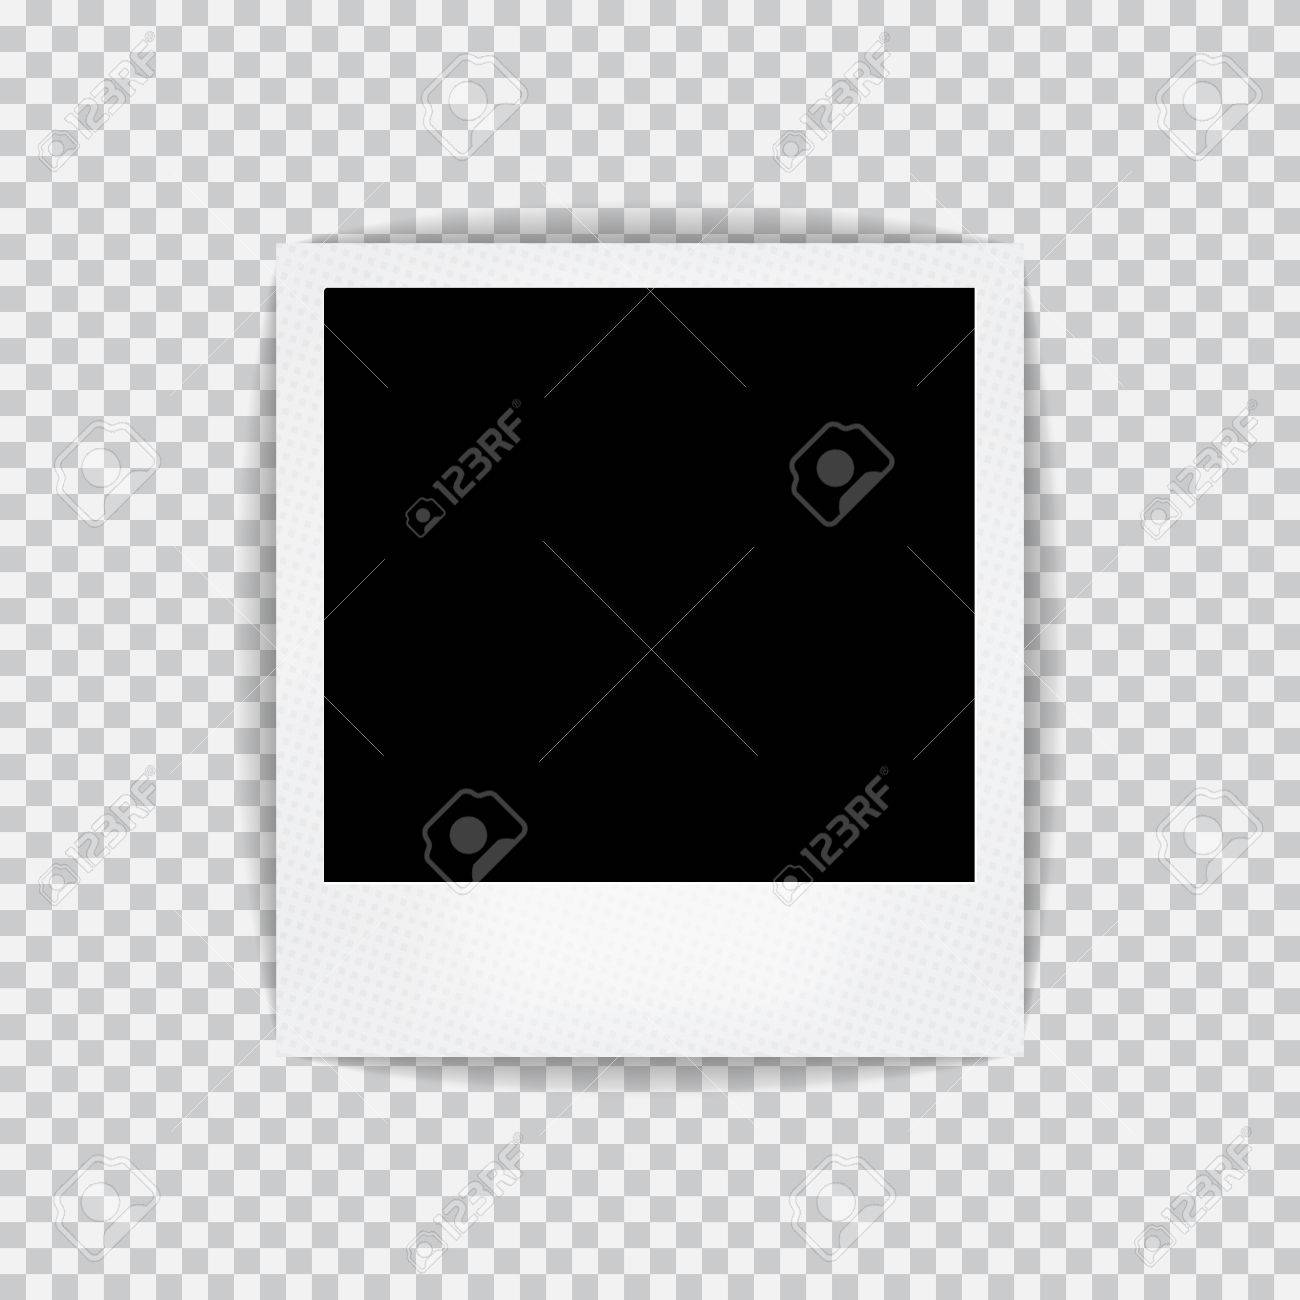 Old Empty Realistic Photo Frame With Transparent Shadow On Plaid ...